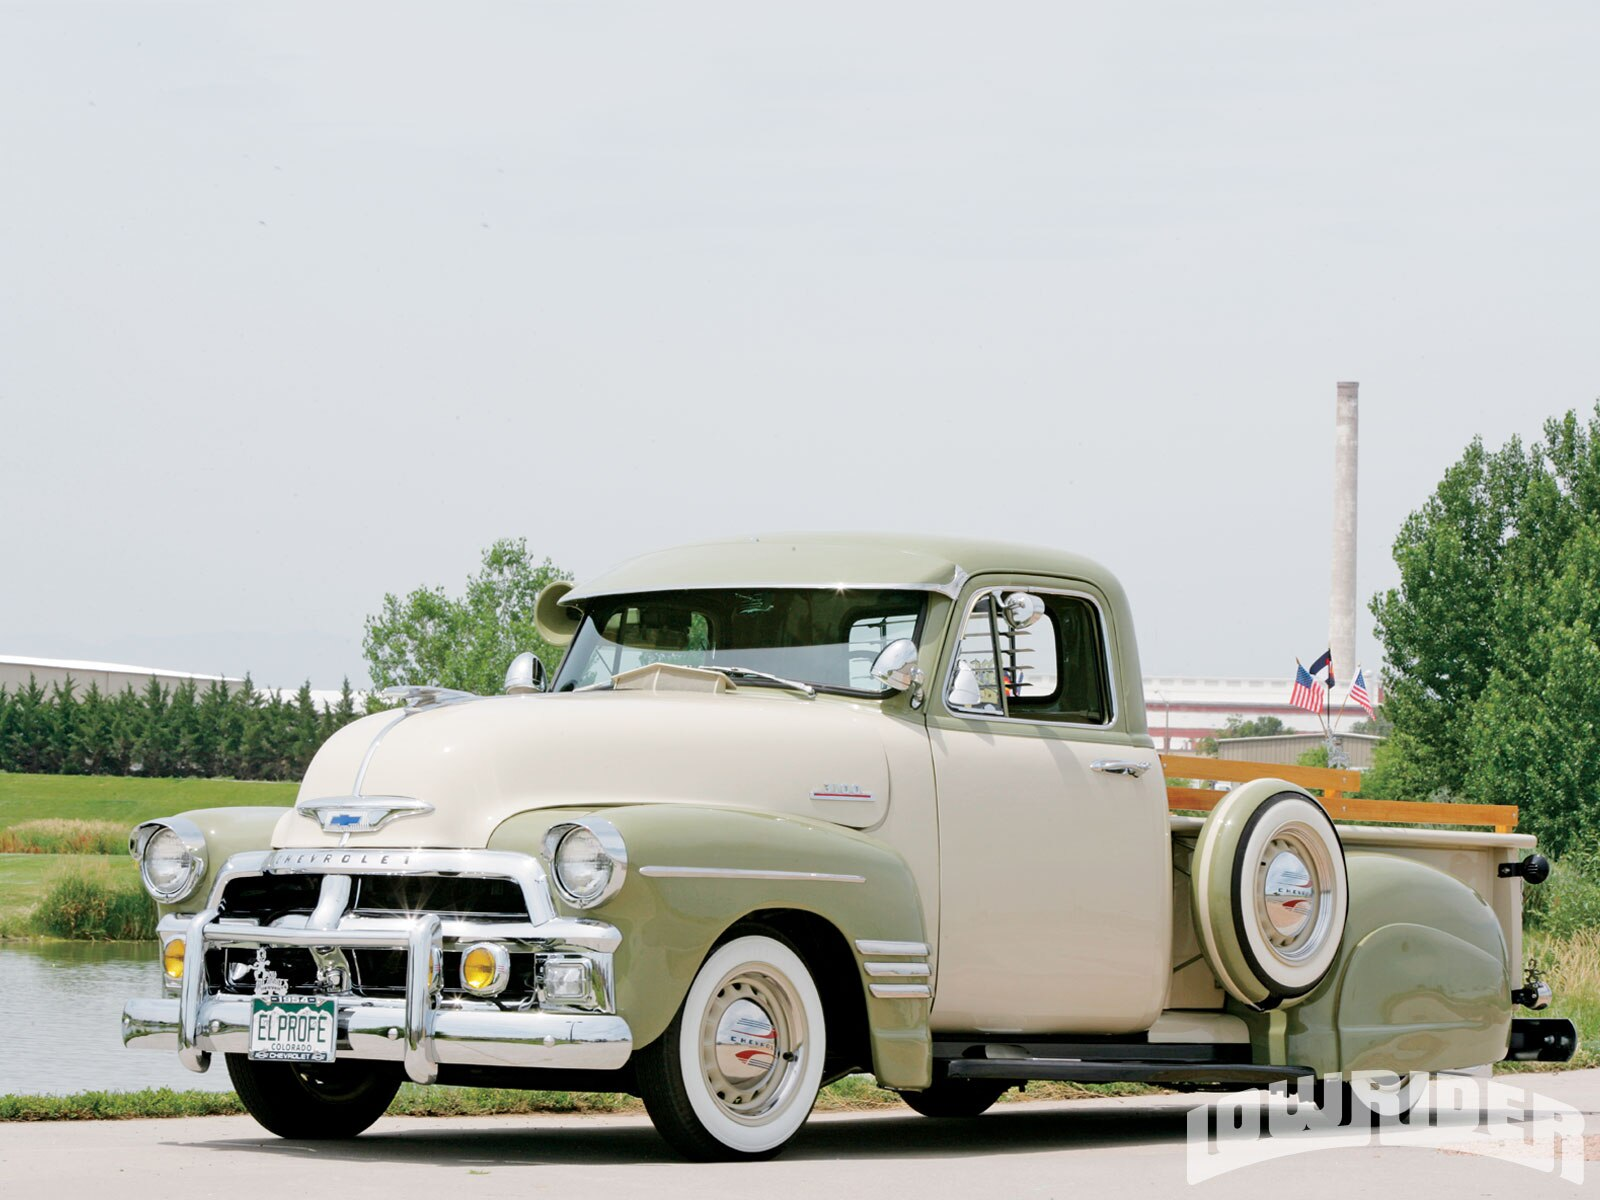 lrmp_1006_01_o-1954_chevrolet_3100_series_truck-front3